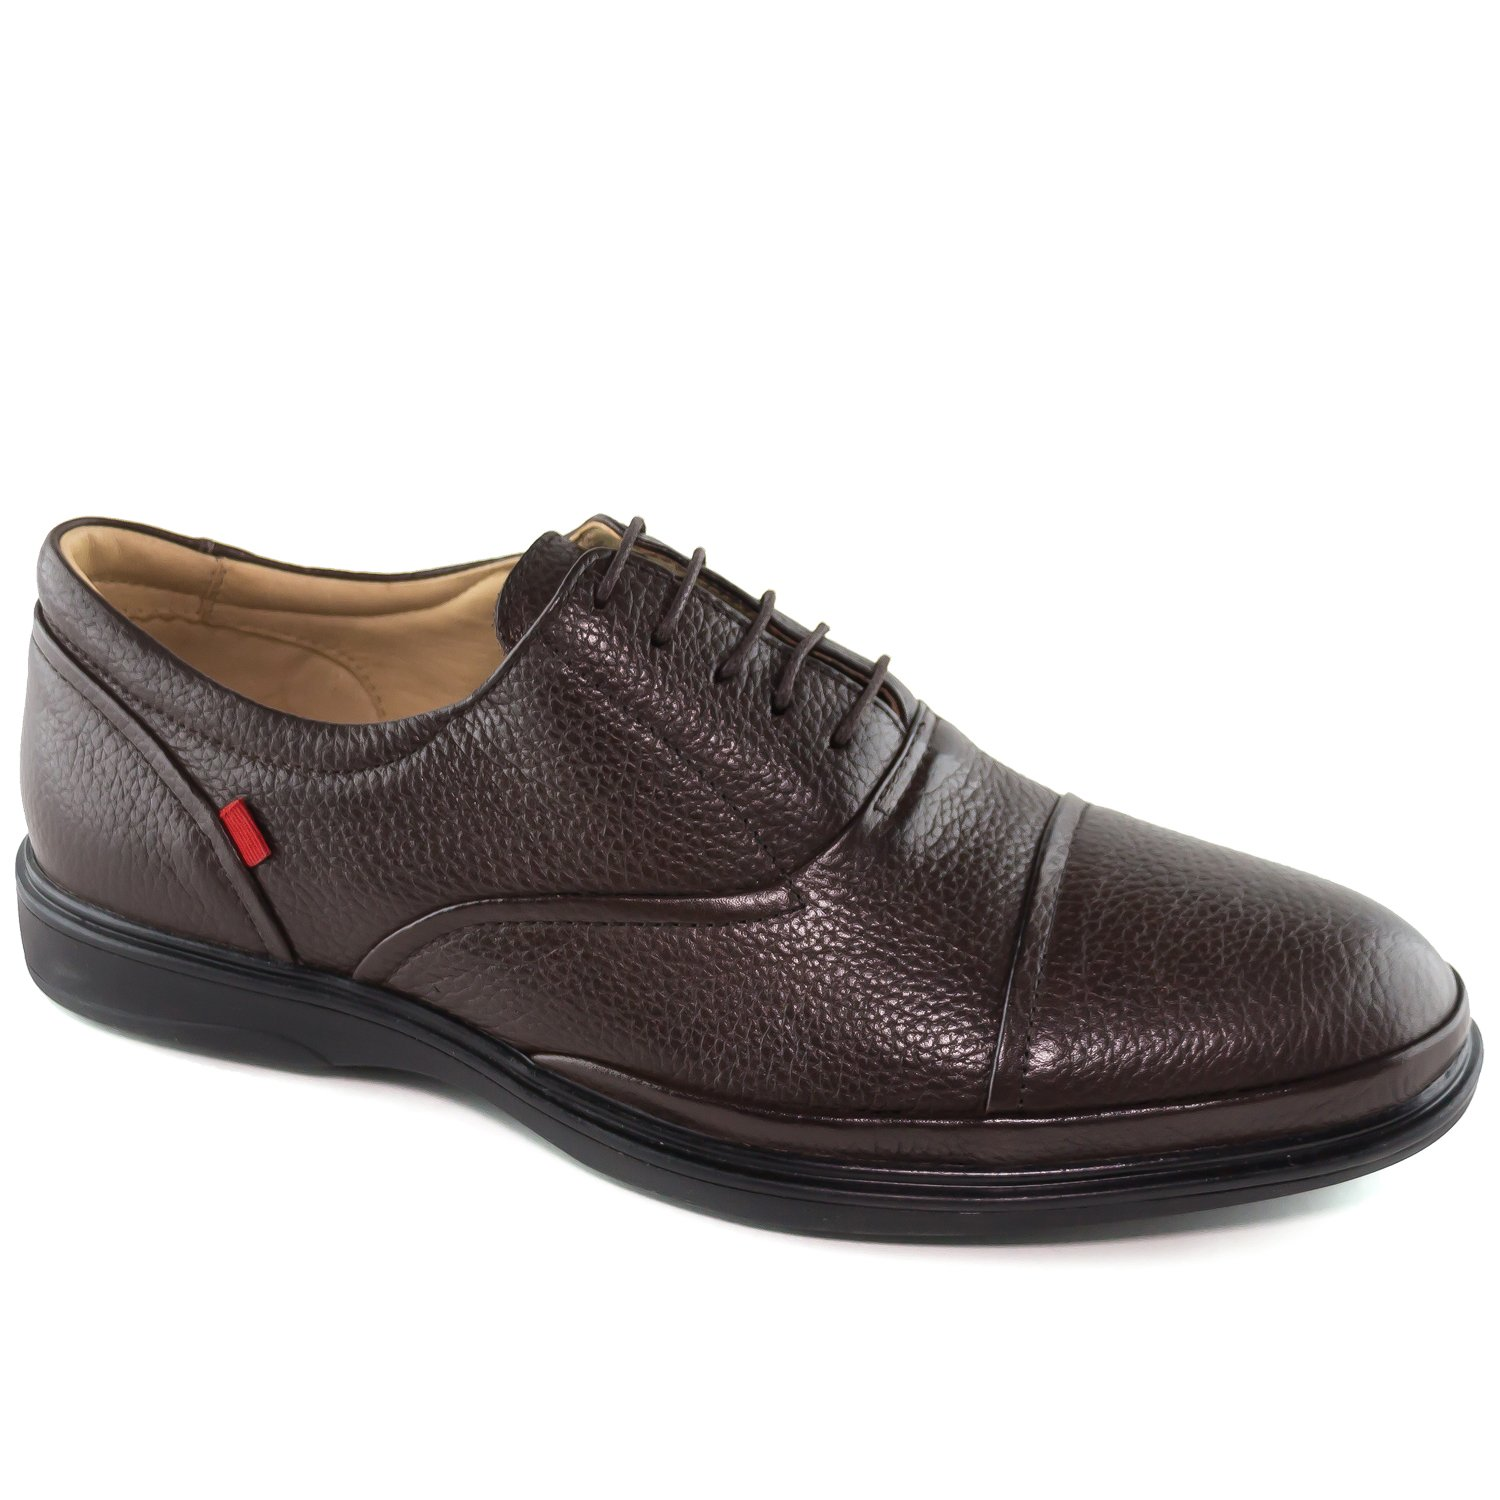 Mens Genuine Leather Made In Brazil Broad Street Classic Oxford Brown Grainy Lace Up Marc Joseph NY Fashion Shoes 10 by Marc Joseph New York